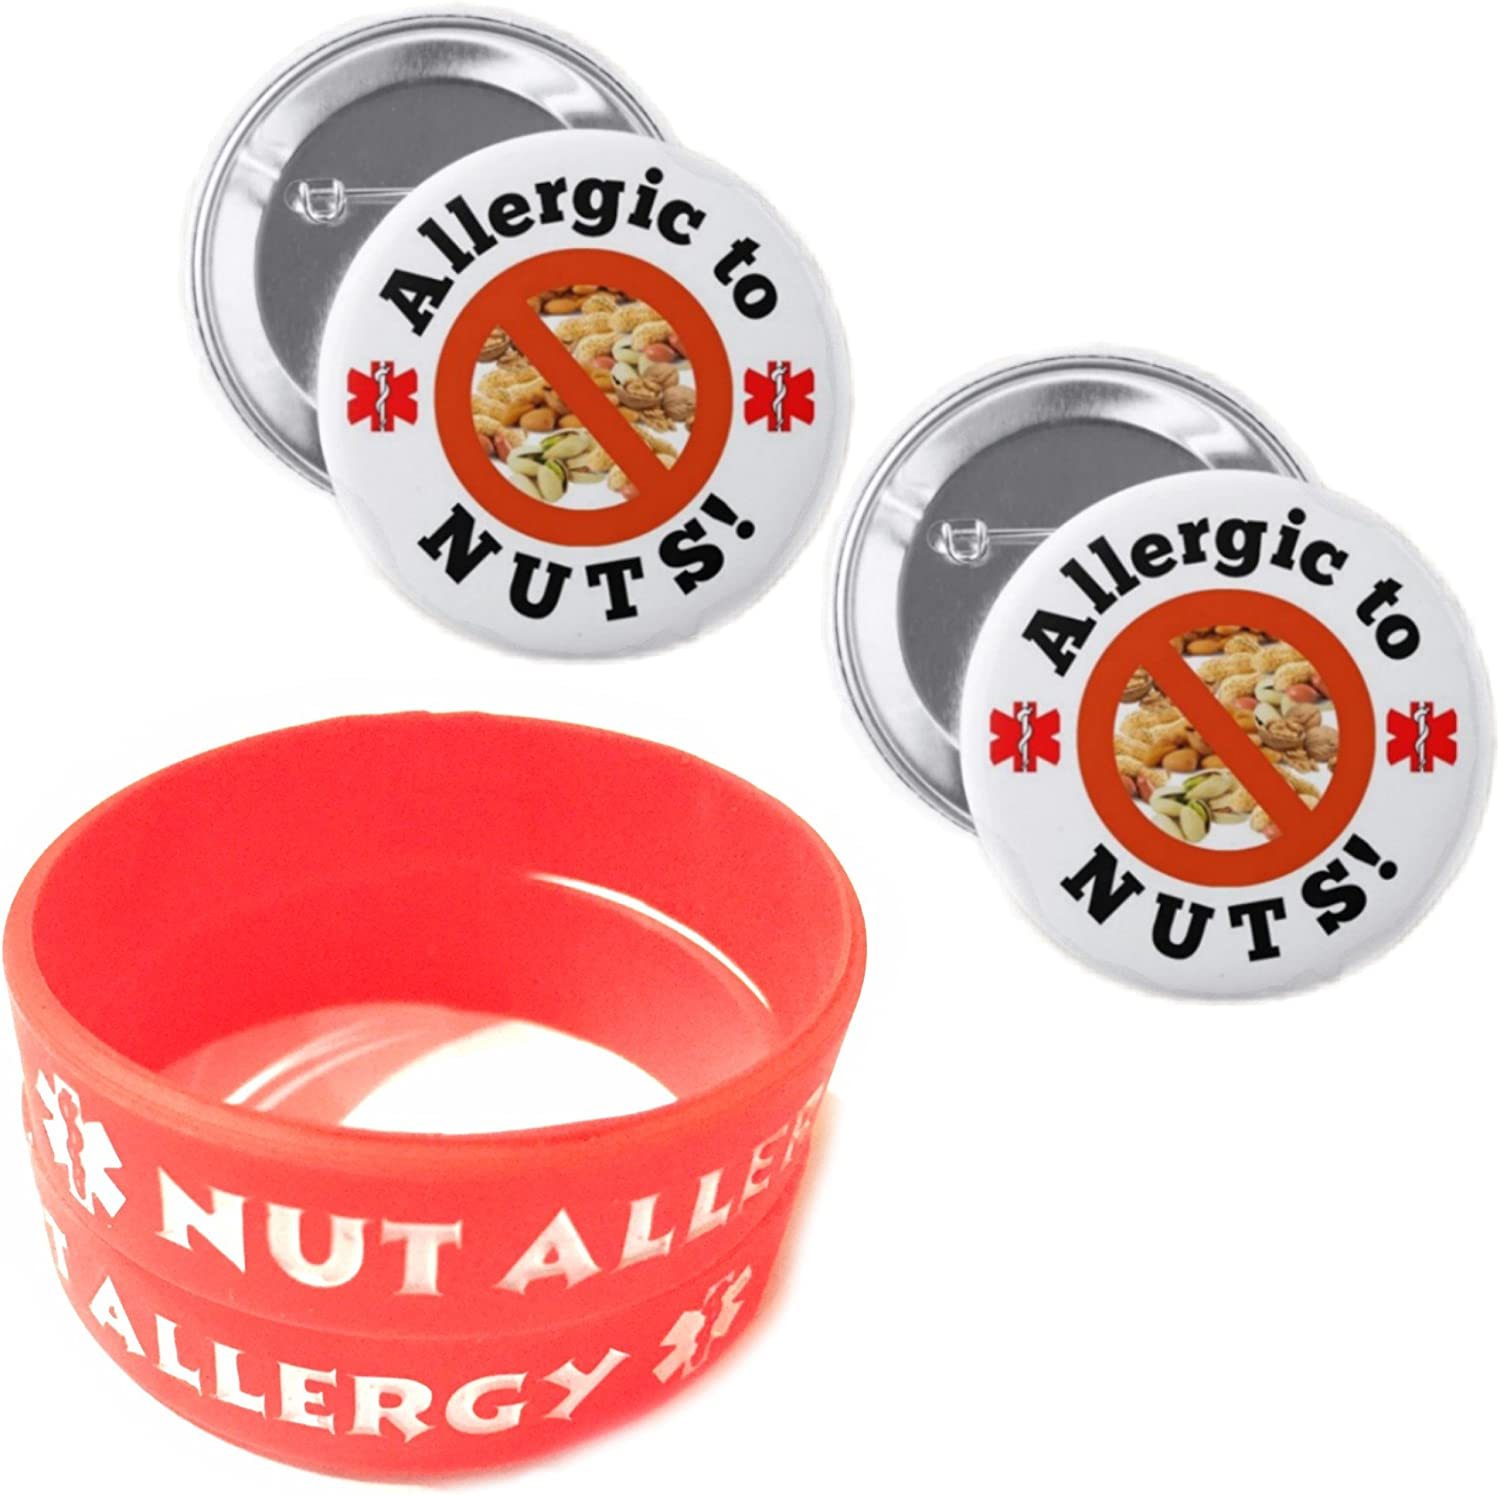 Nut Allergy Bracelets for Kids Red 2pcs Toddler Size and Allergic to Nuts Button Pin 2pcs Medical Alert Bracelets Buttons